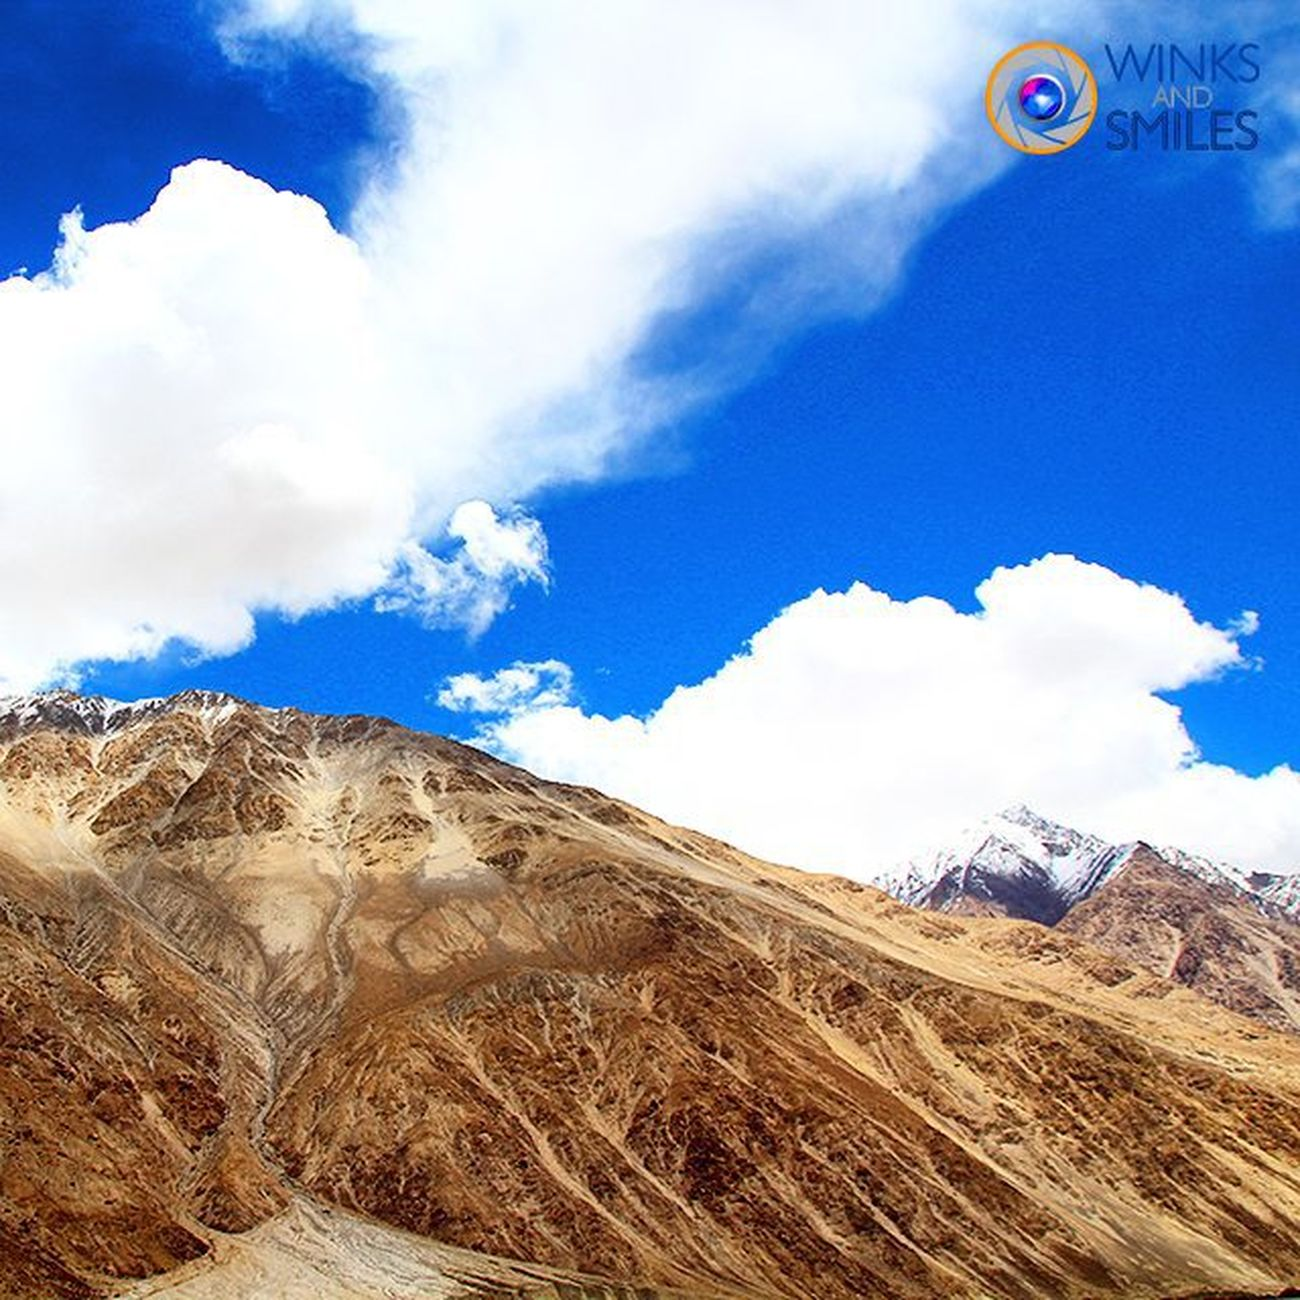 "------------------------------------------------------------------------------------------- 🇱🇦🇳🇩🇸🇨🇦🇵🇪 🇴🇫 🇹🇭🇪 🇩🇦🇾☁⛅ ------------------------------------------------------------------------------------------- ""To the complaint, 'There are no people in this photograph, ' I respond, There are always two people: the photographer and the viewer."" -- Ansel Adams 😊😊😊 LehLadakh India Indiabestpic Convexrevolution Incredibleindia Worldbestgram Incredibleladakh Landscape_captures Chilling Landscapeofinstagram Ladakhdiaries2015 Indianphotographer Travelgram Instago Thebestofthis Travelphotography Photographers_of_india Instapic Instapicoftheday VSCO Wassupindia Followforfollow Likeforlike Holiday Ig_photoclub click_india_click ig_himalaya explorethroughcamera exploreindia yin_india"